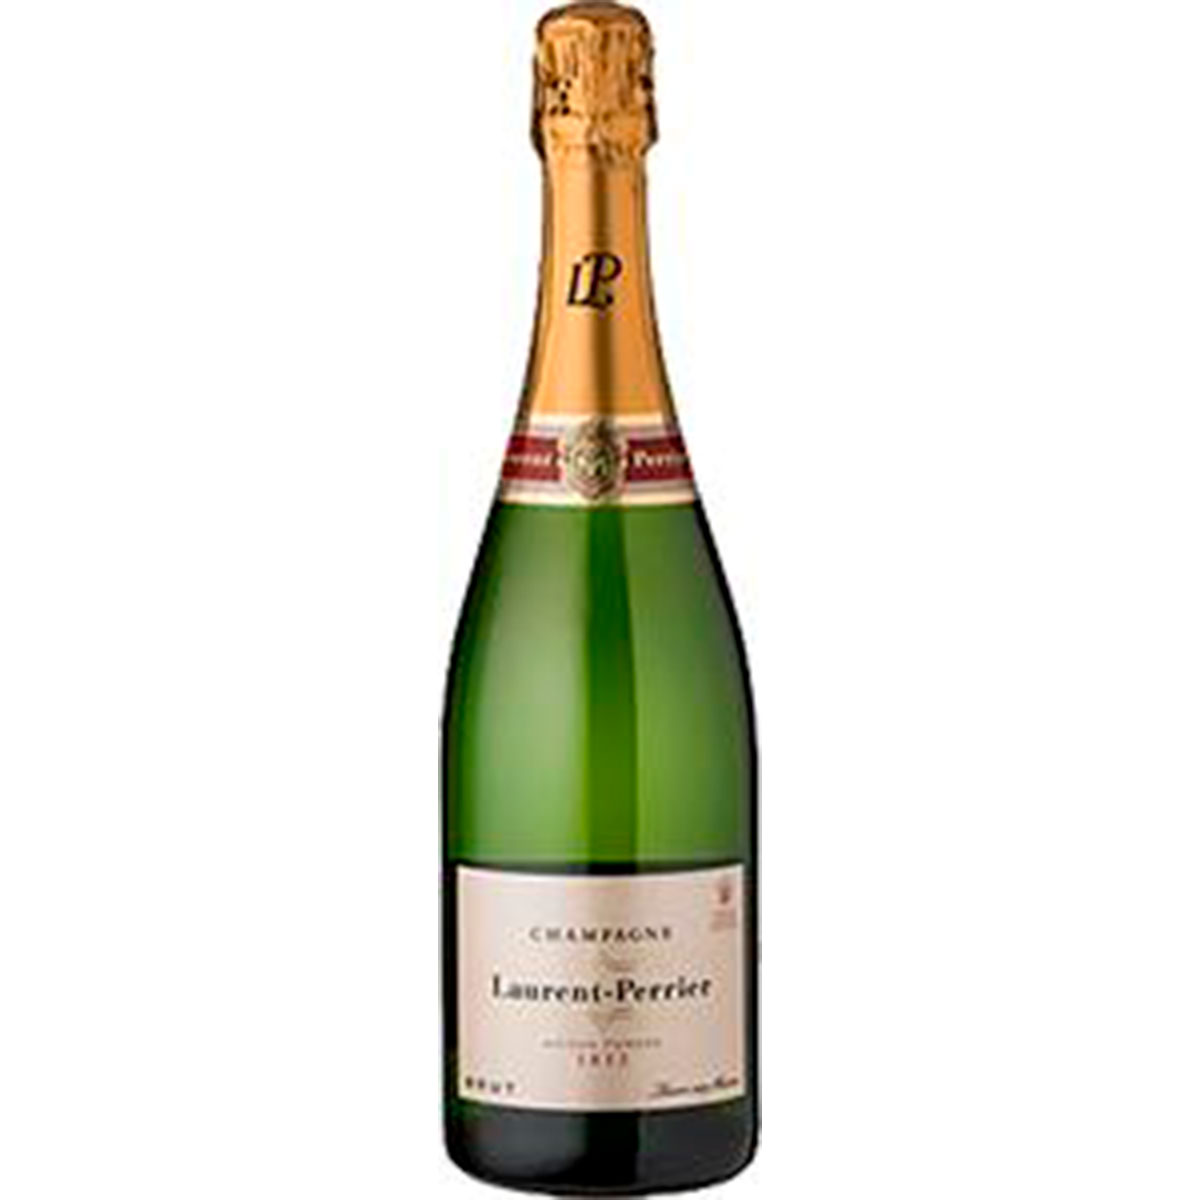 CHAMPAGNE LAURENT PERRIER BRUT RP91